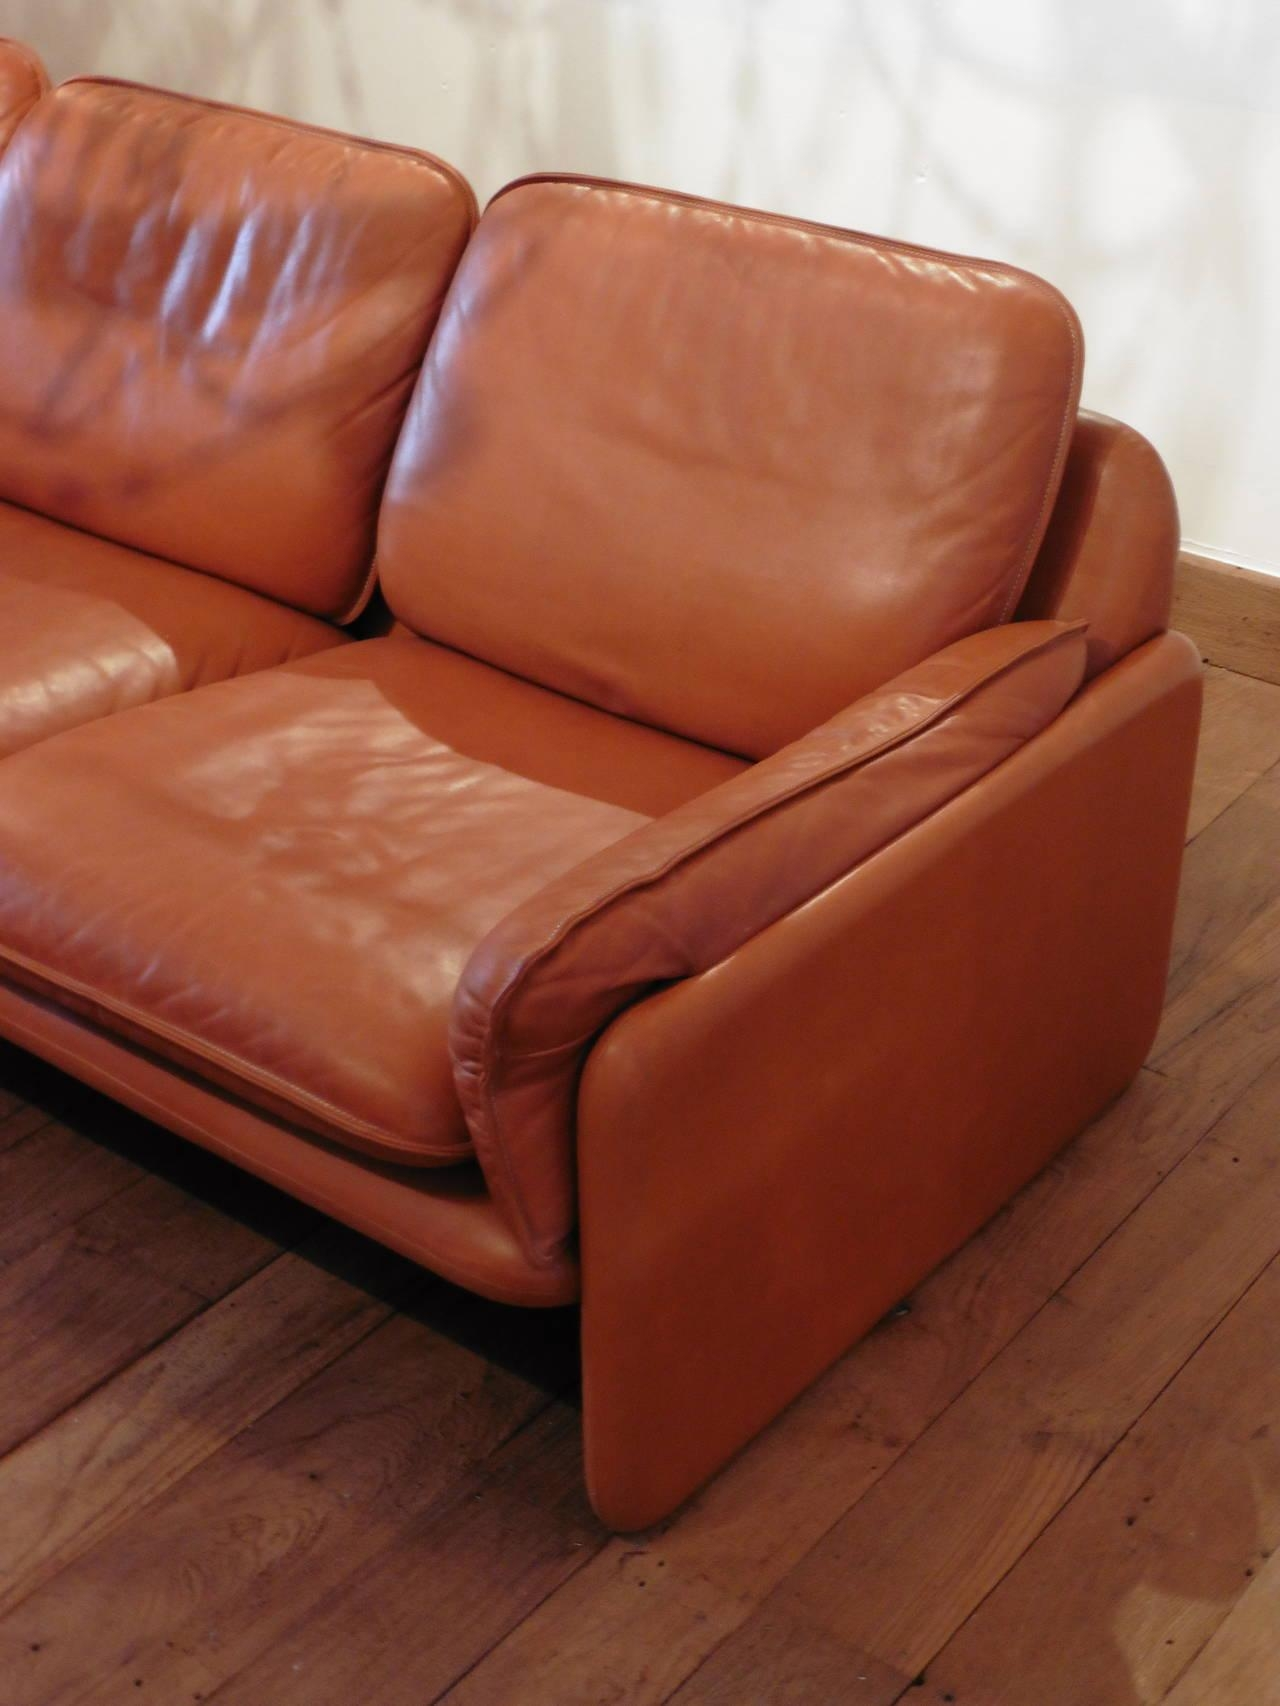 Aniline Leather Sofa With Design Gallery 8035 | Kengire Throughout Aniline Leather Sofas (Image 3 of 20)